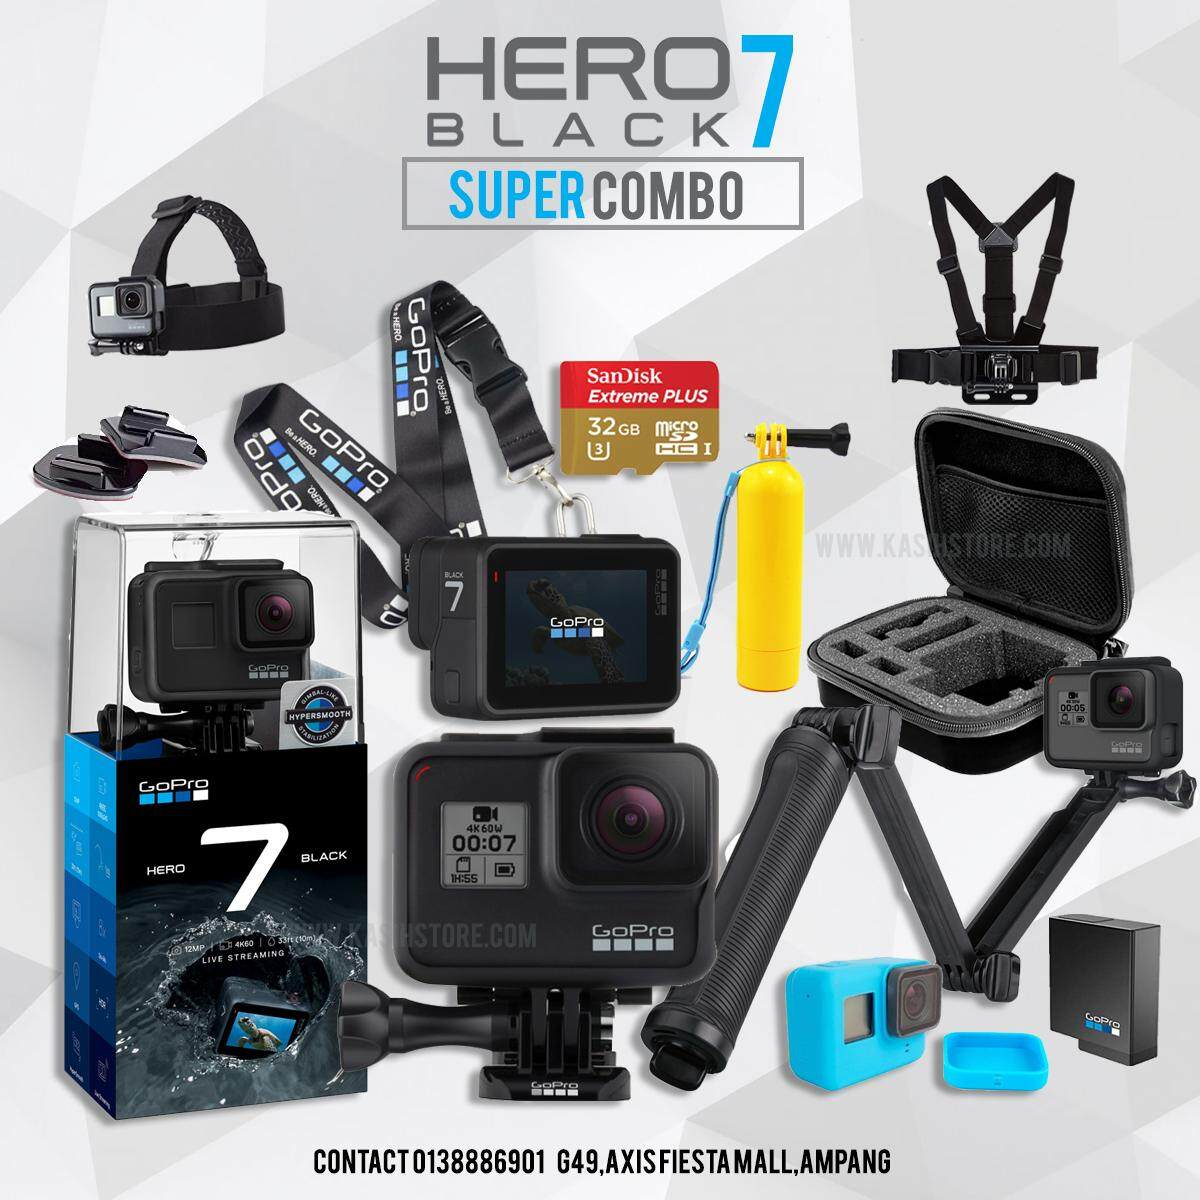 Sports Action Camera Buy At Best Price In X Pro 6s 4k 12 Mp Gopro Hero 7 Black Hero7 Bundle Pack Official Funsportz Malaysia Warranty